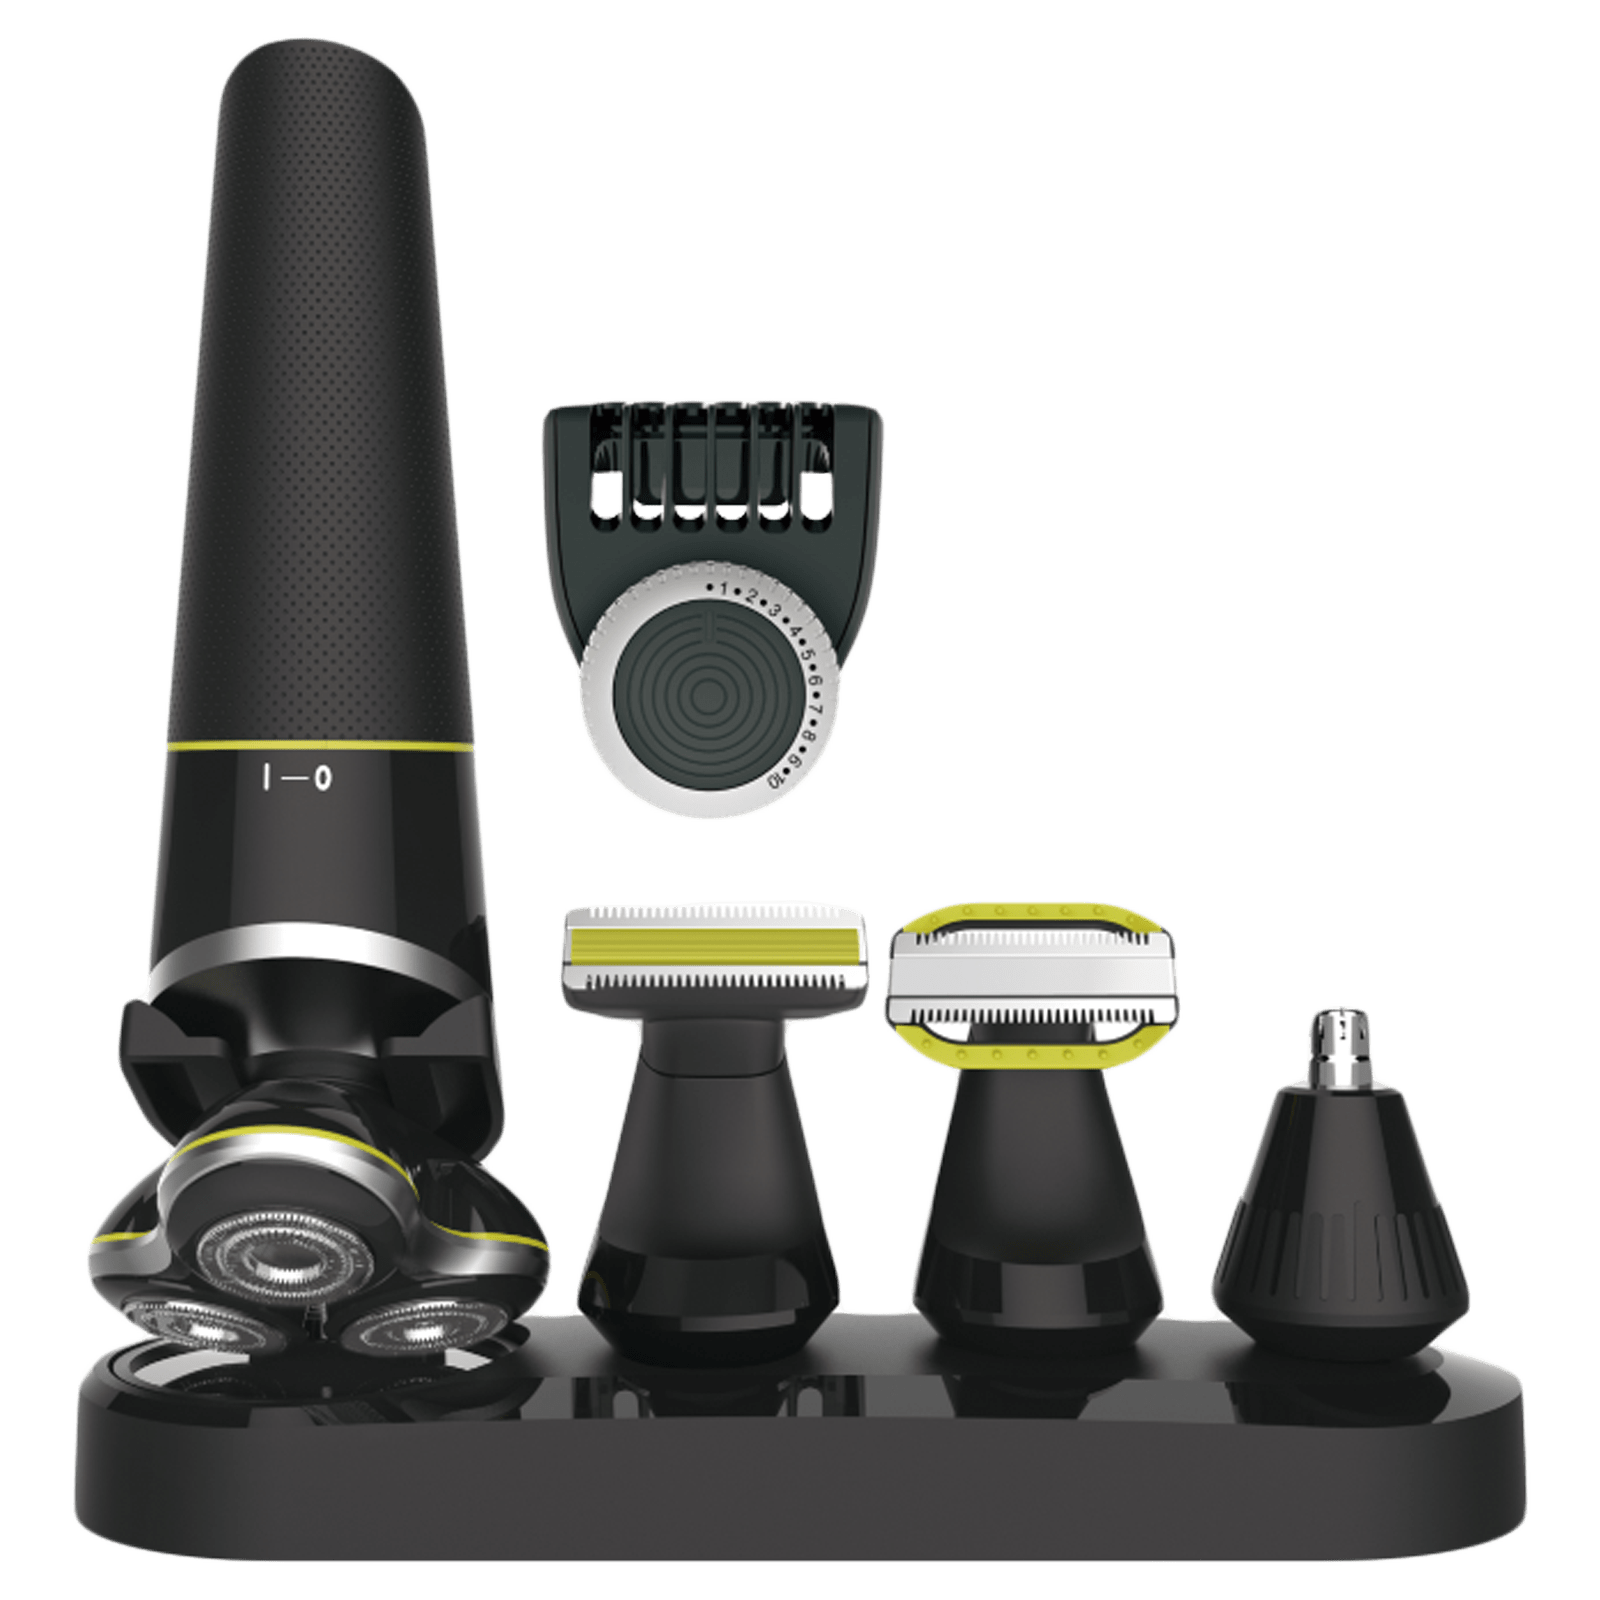 Swiss Military Stainless Steel Blades Cordless 5-in-1 Body Grooming Kit (Fast Charging Capability, SMSHCG201sGS51, Black)